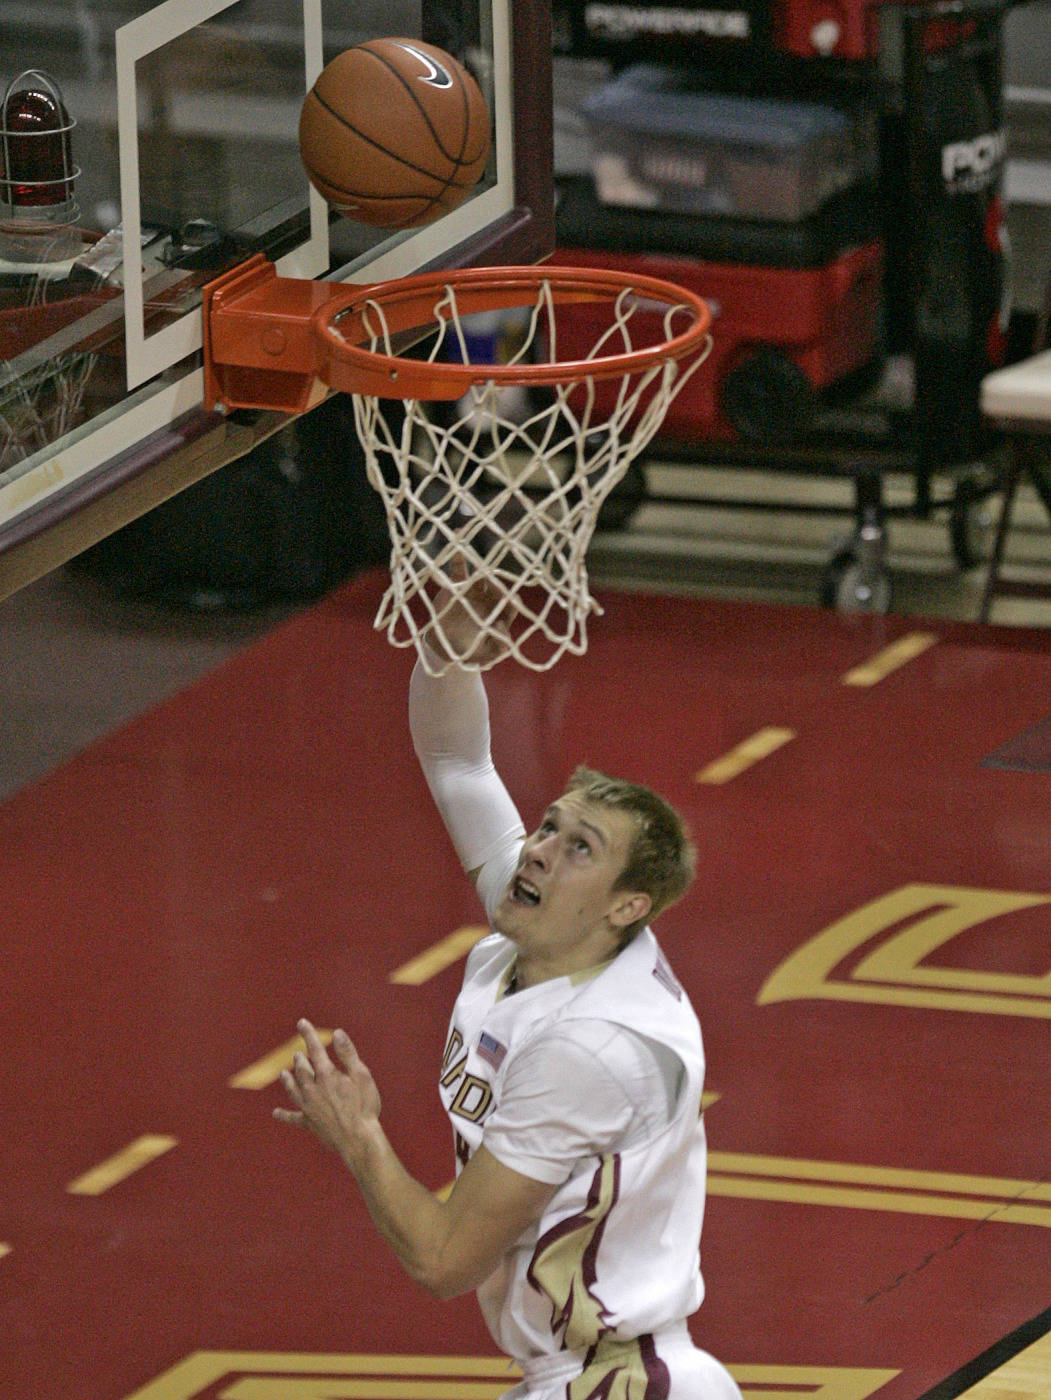 Florida State's Deividas Dulkys scores a basket against Alabama A&M during the first half of an NCAA college basketball game on Thursday, Dec. 31, 2009, in Tallahassee, Fla. Dulkys matched his career high with 19 points, and No. 22 Florida State routed Alabama A&M 81-34 on Thursday. (AP Photo/Steve Cannon)